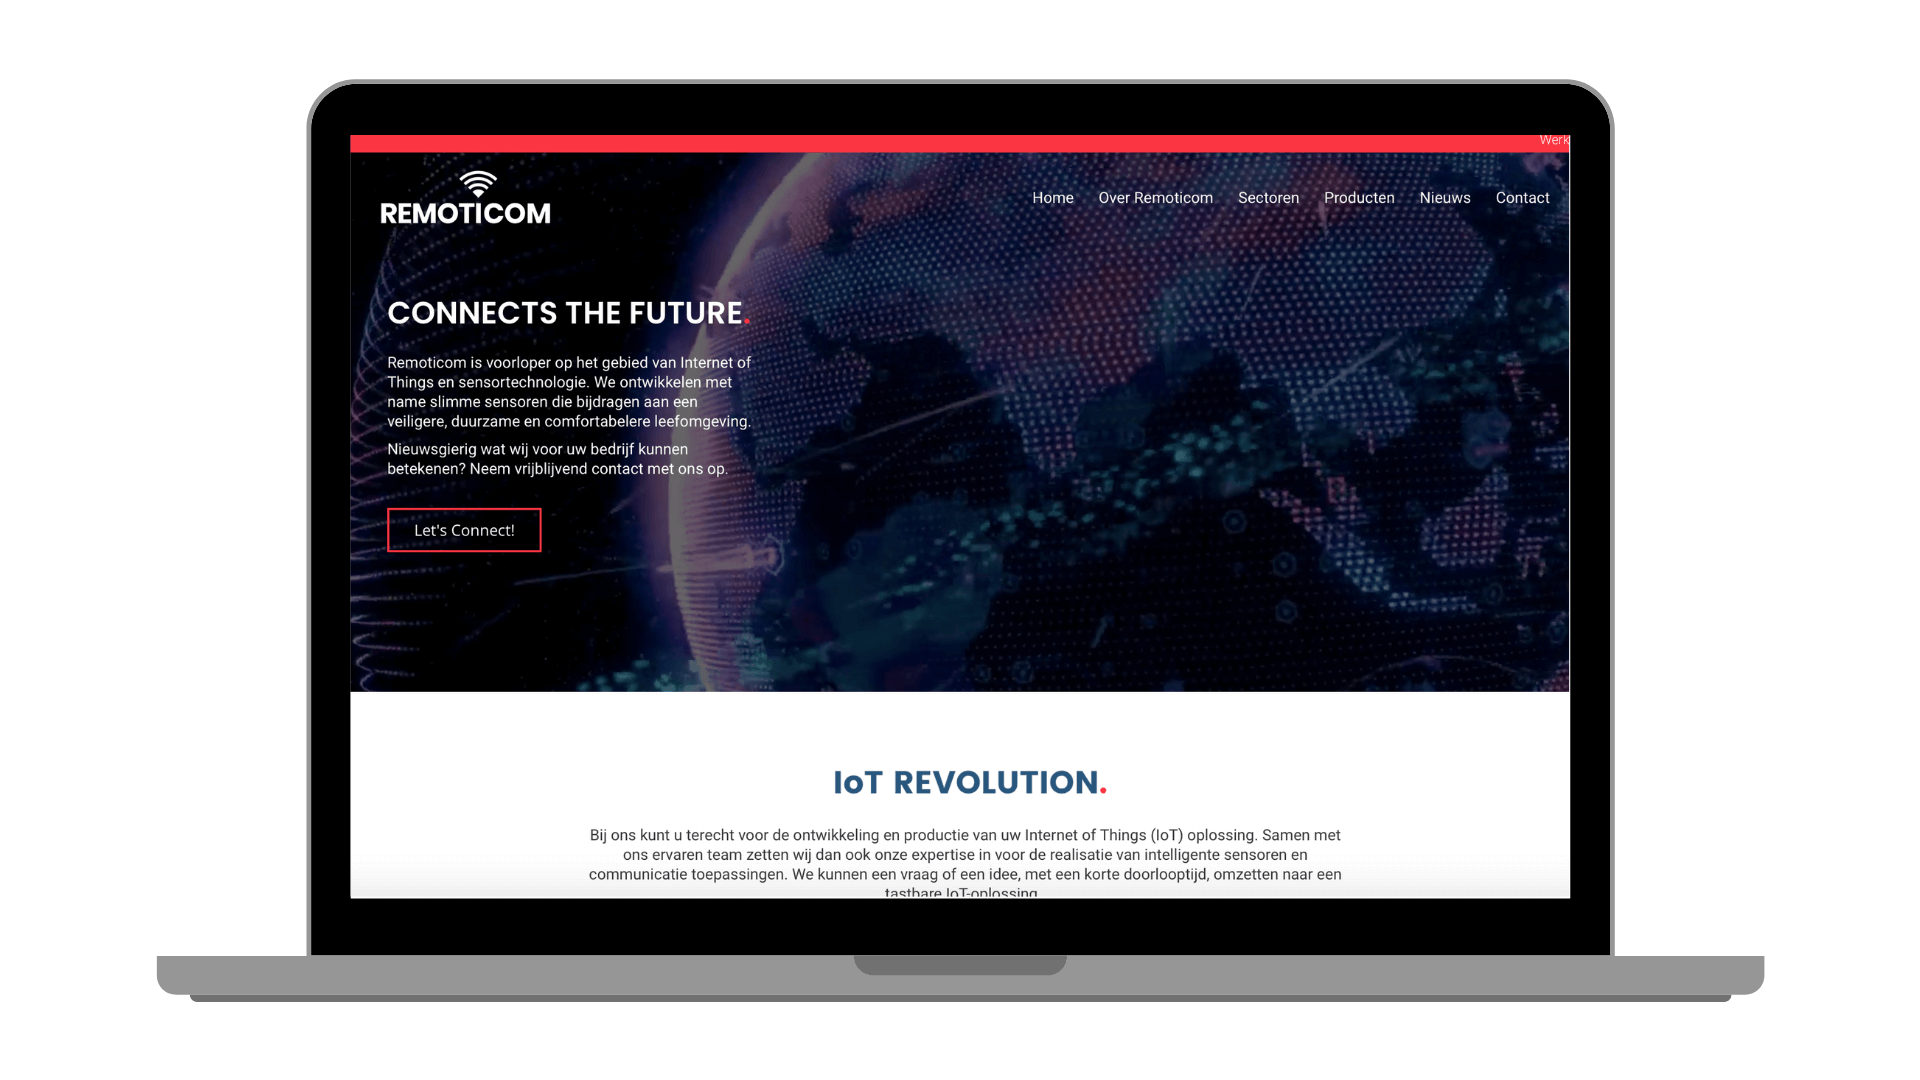 Remoticom website